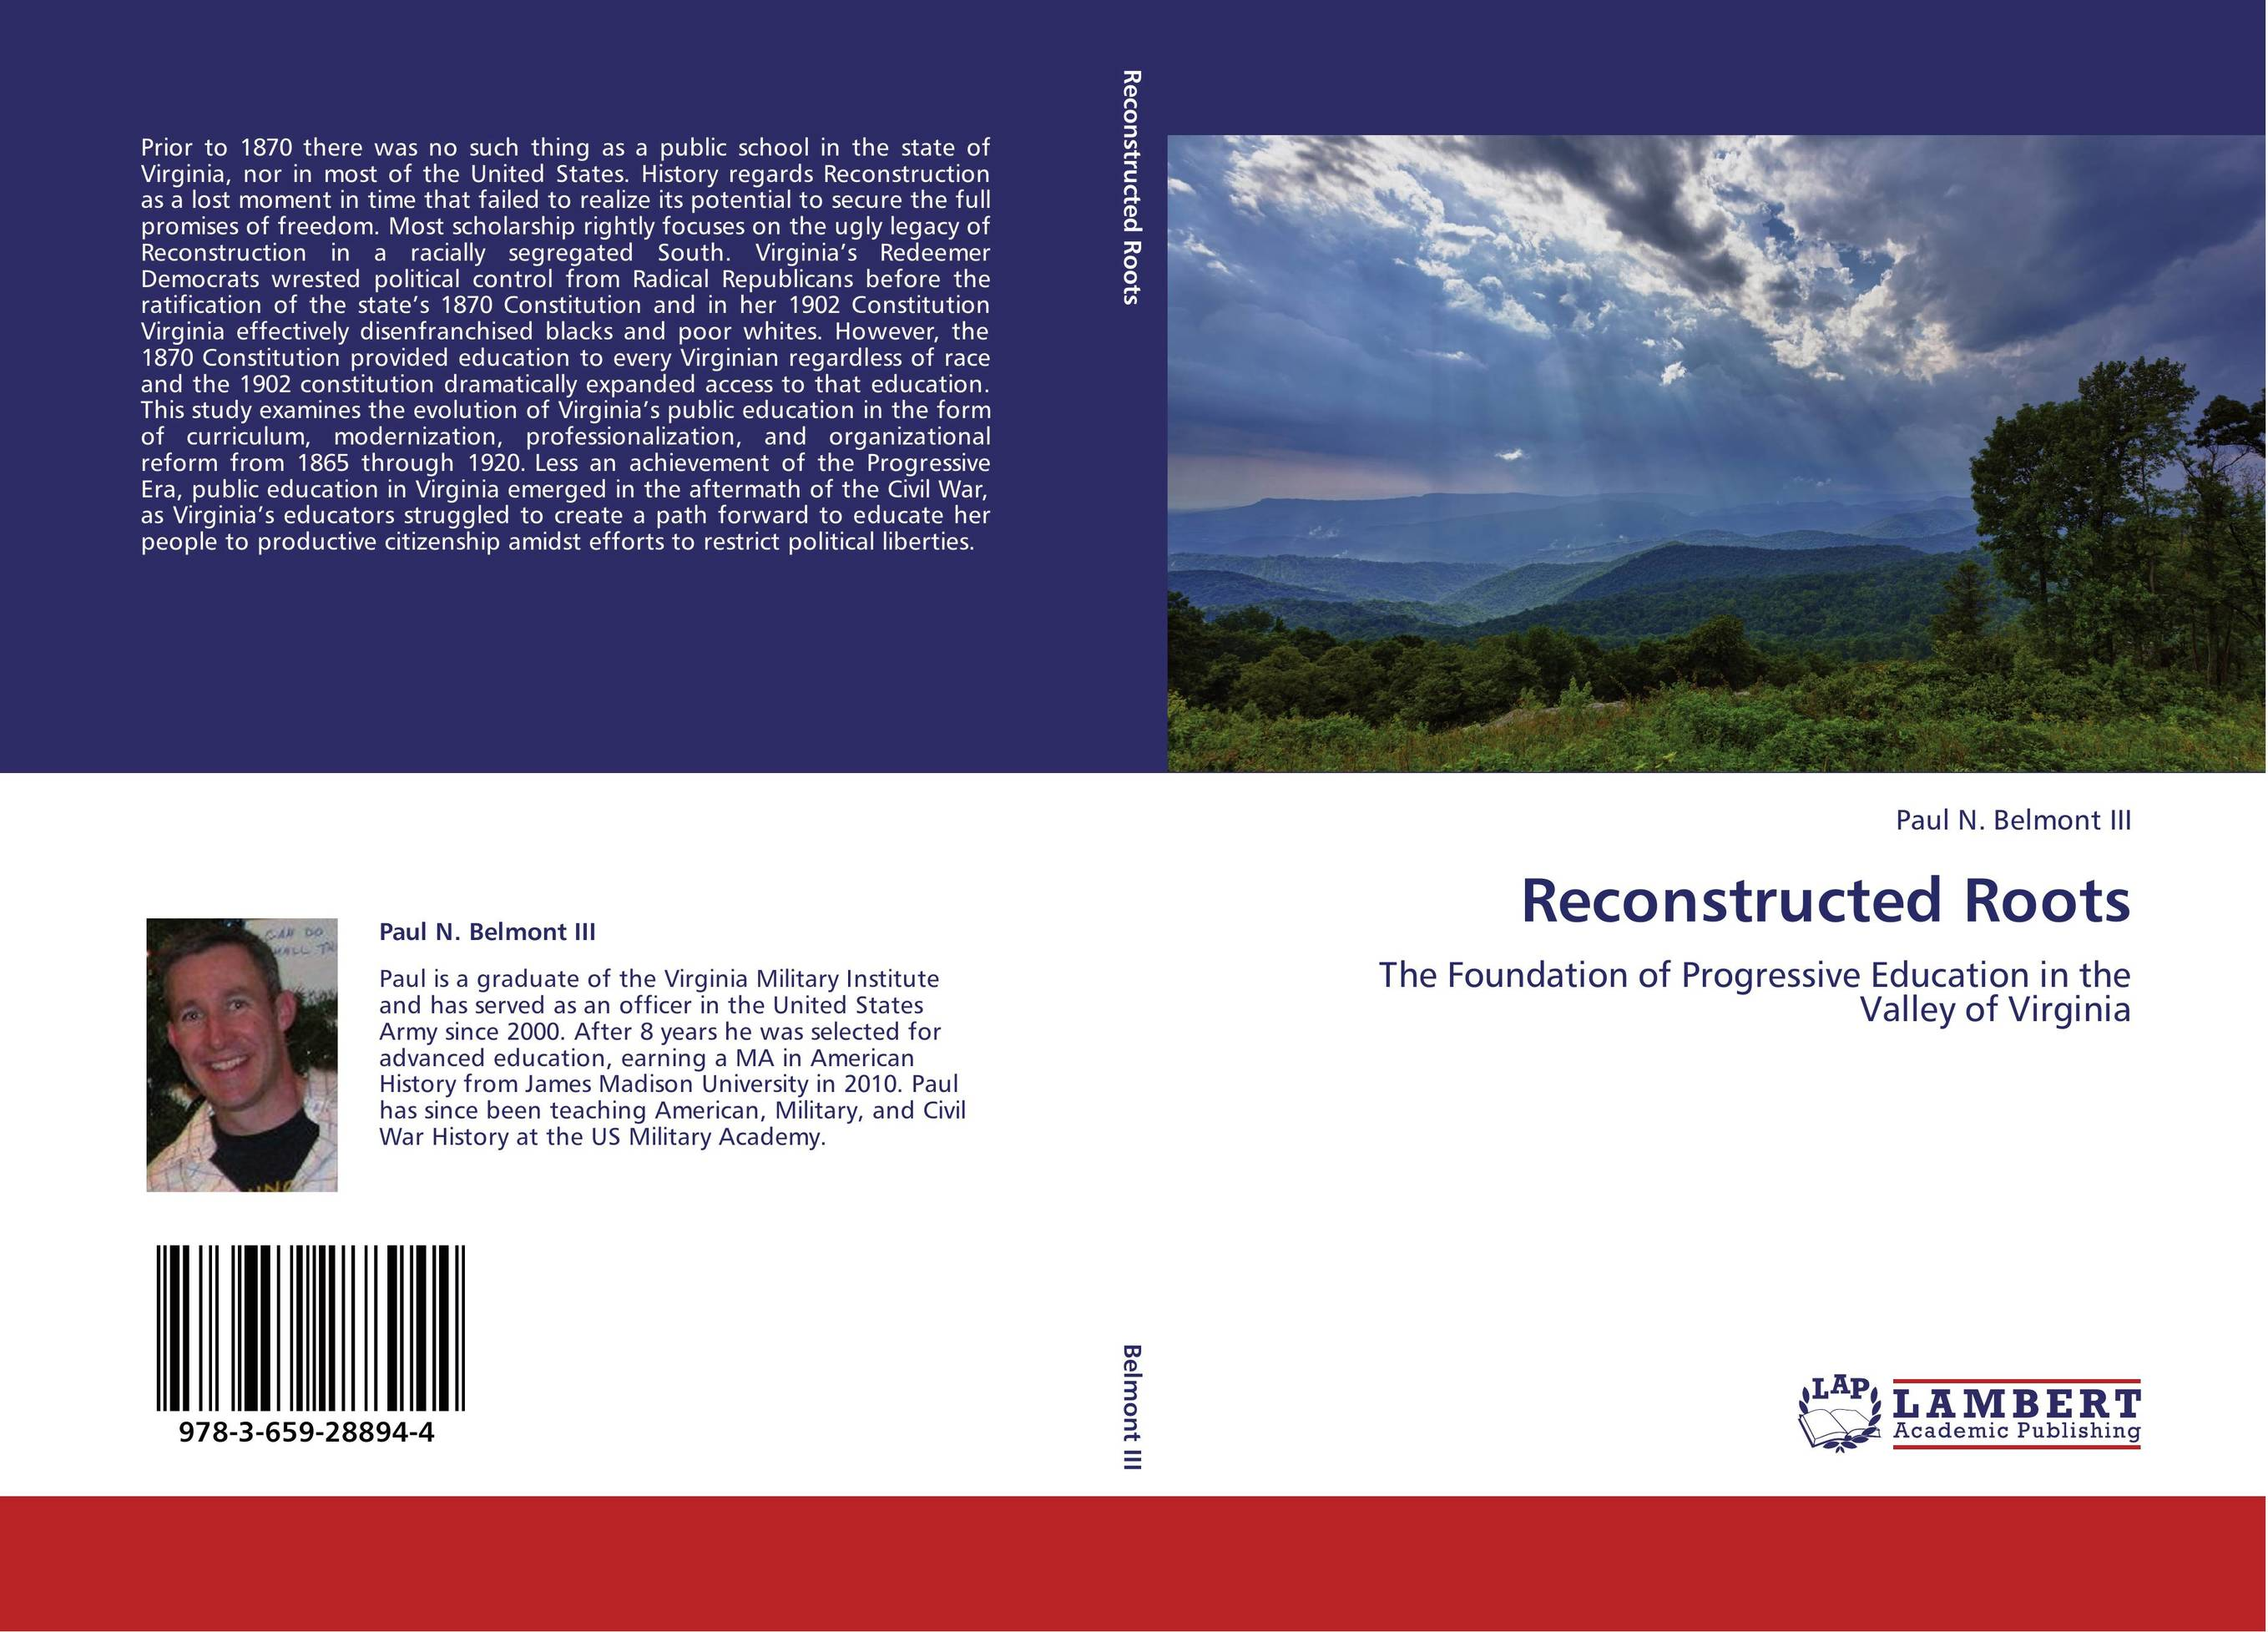 9783659288944 Reconstructed Roots Paul N. Belmont III